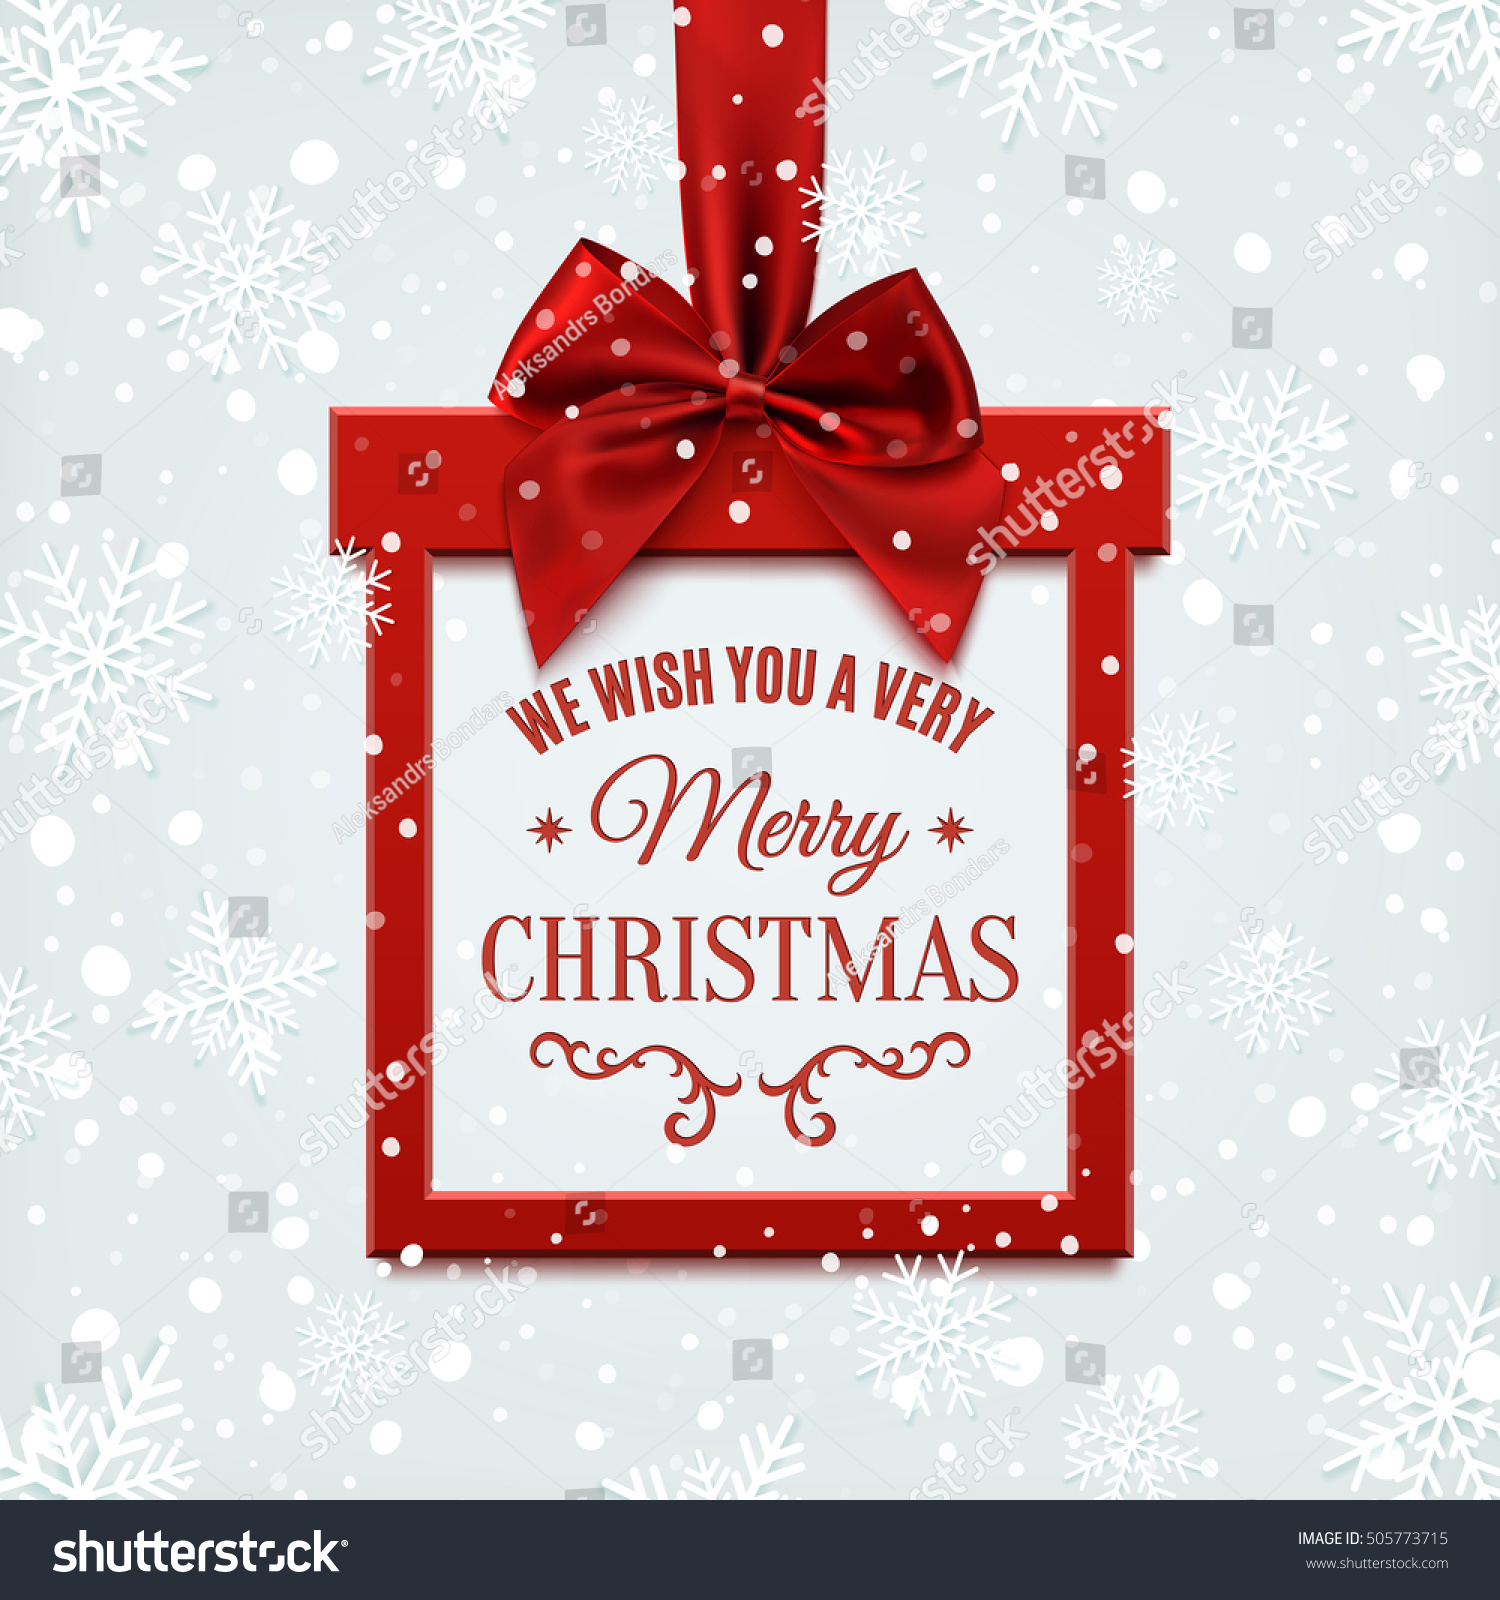 We Wish You Very Merry Christmas Stock Vector (Royalty Free ...